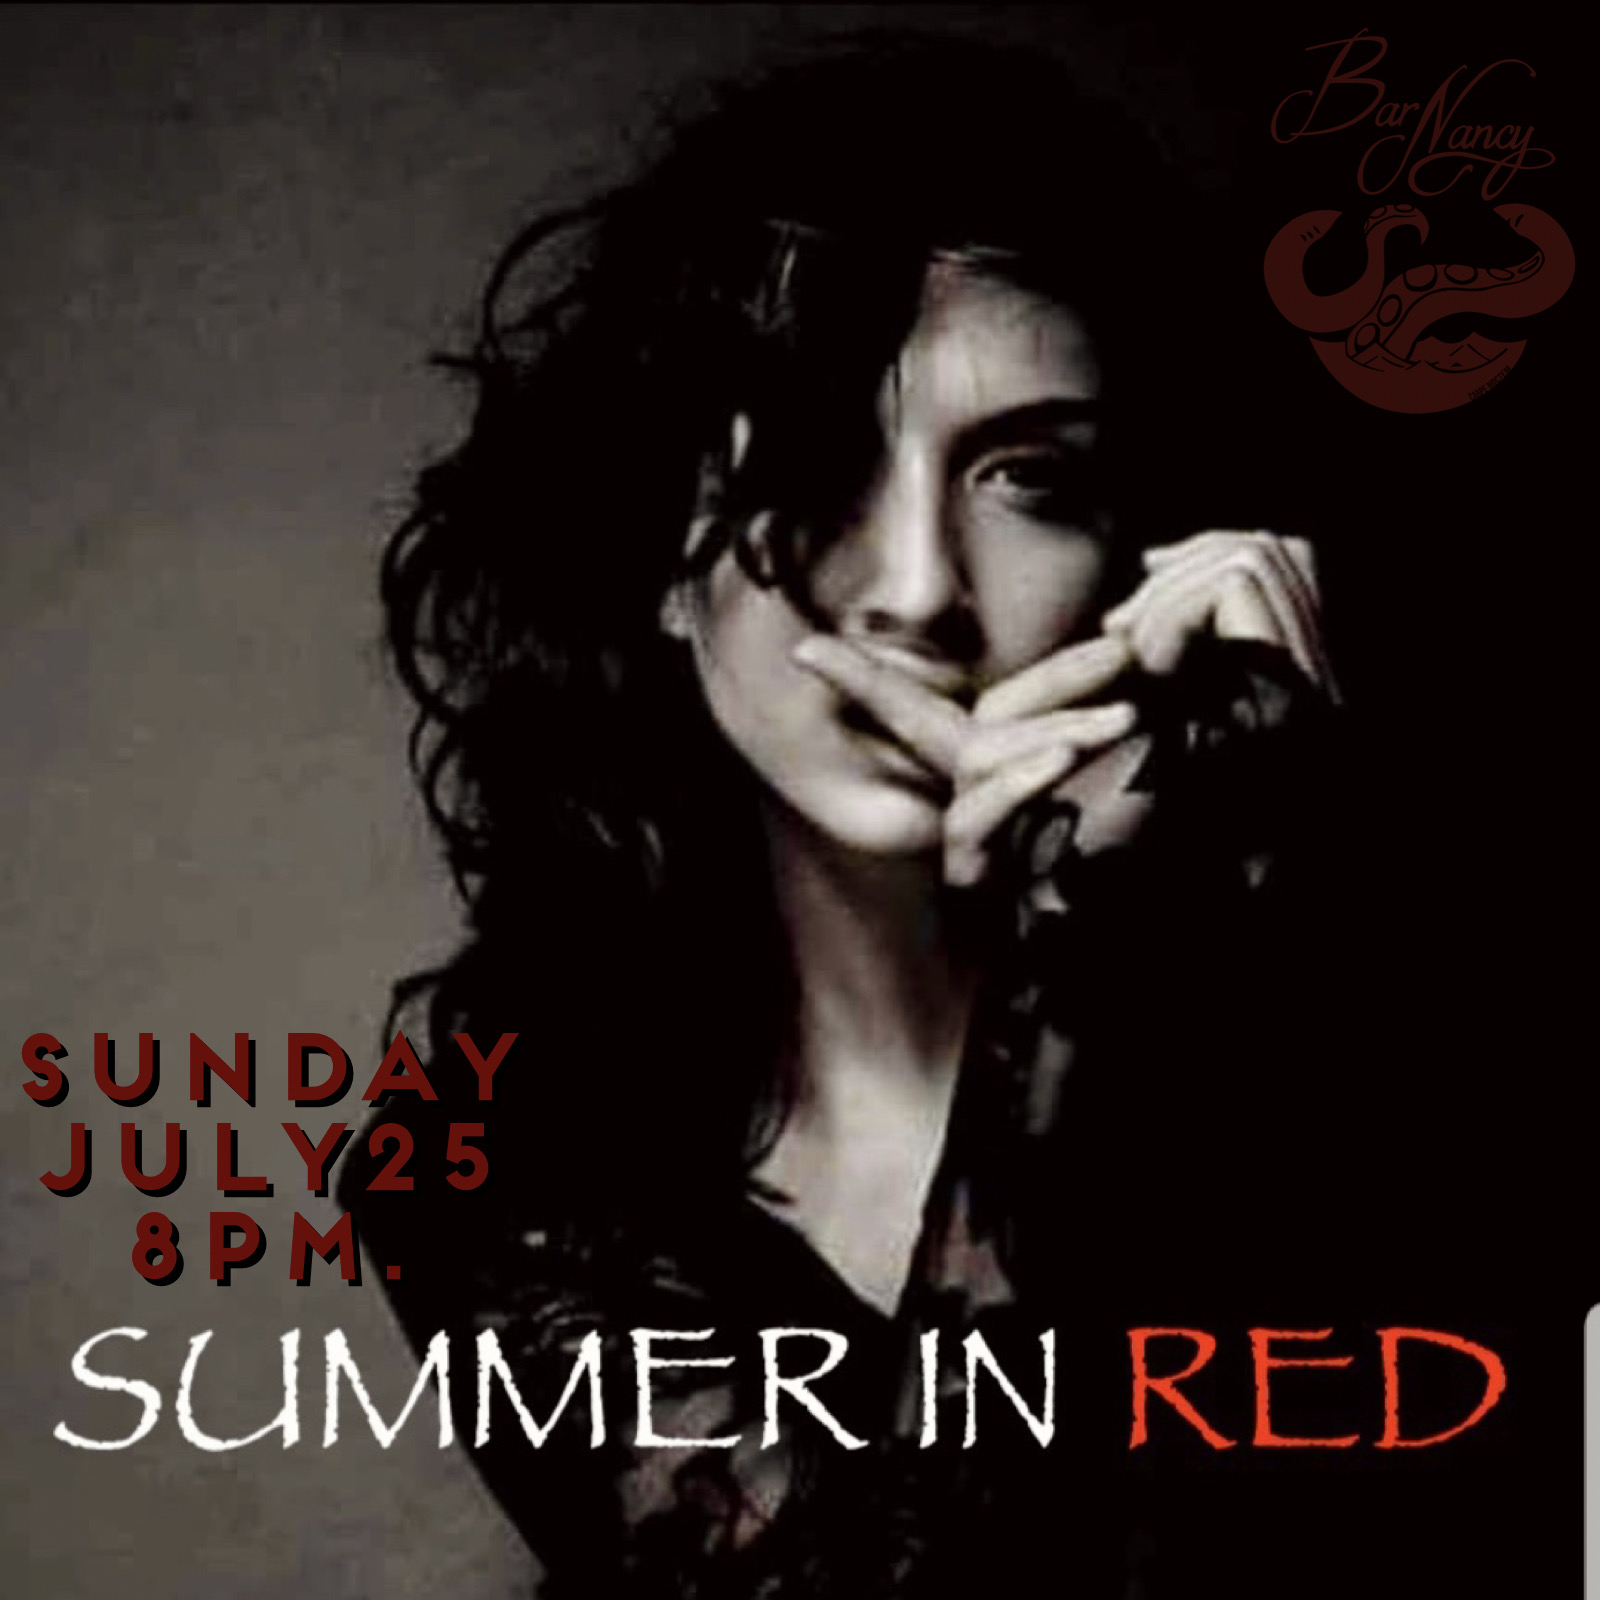 Summer in Red at Bar Nancy - Sunday July 25 - 8PM